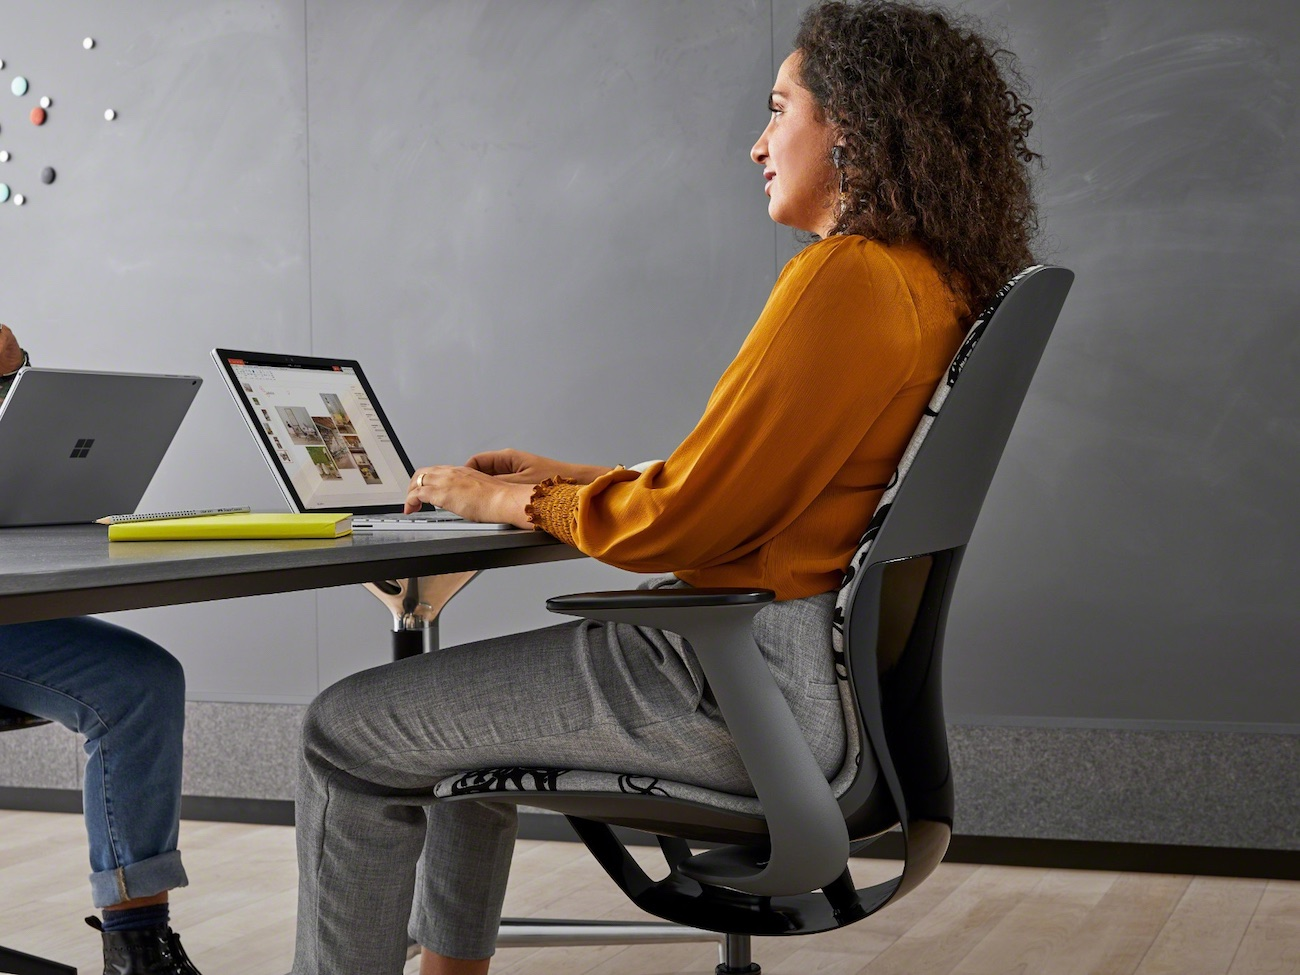 Pleasing These Affordable Ergonomic Chairs Will Improve Your Workday Ocoug Best Dining Table And Chair Ideas Images Ocougorg